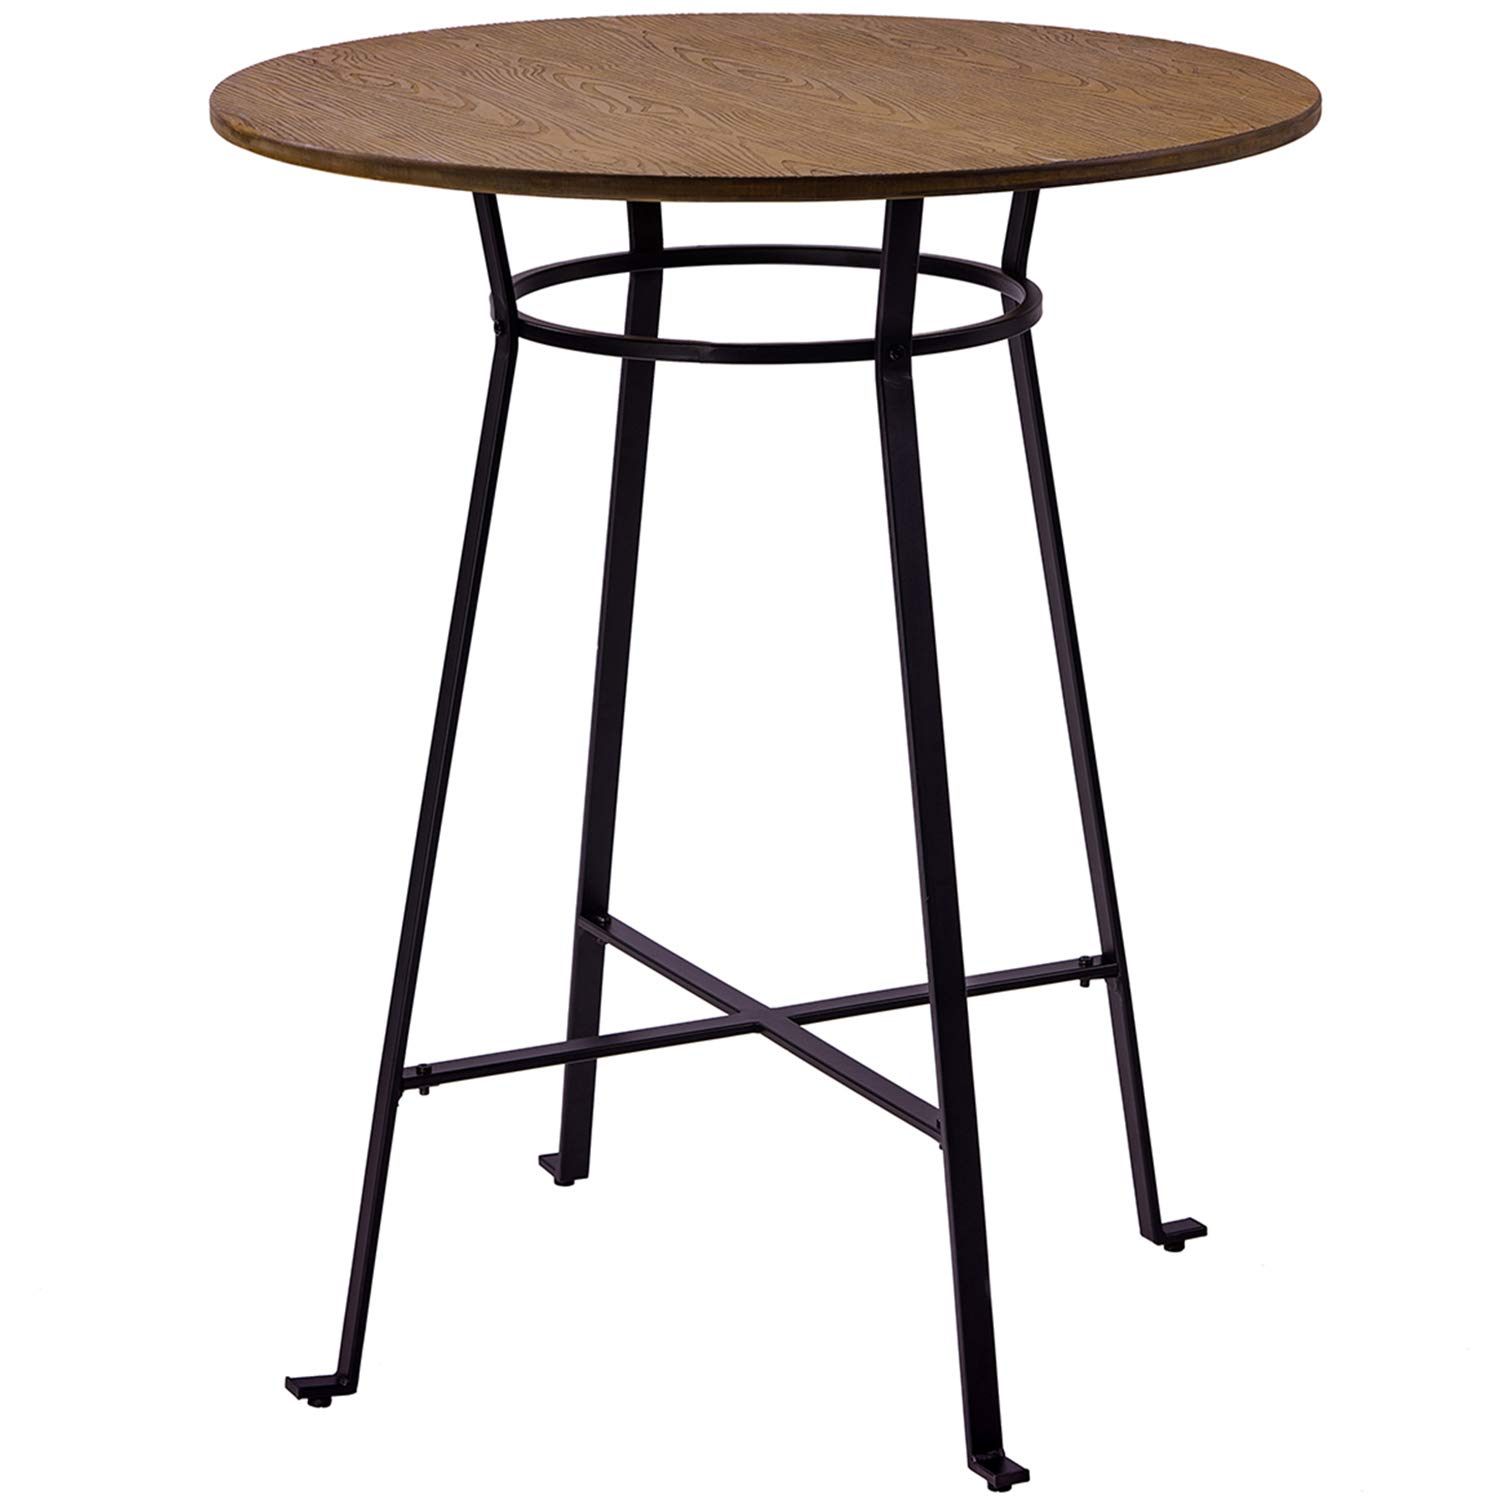 Amazon HarperBright Designs 42 Height Round Bar Table Retro Dining Room Metal Frame TableLight Brown Kitchen